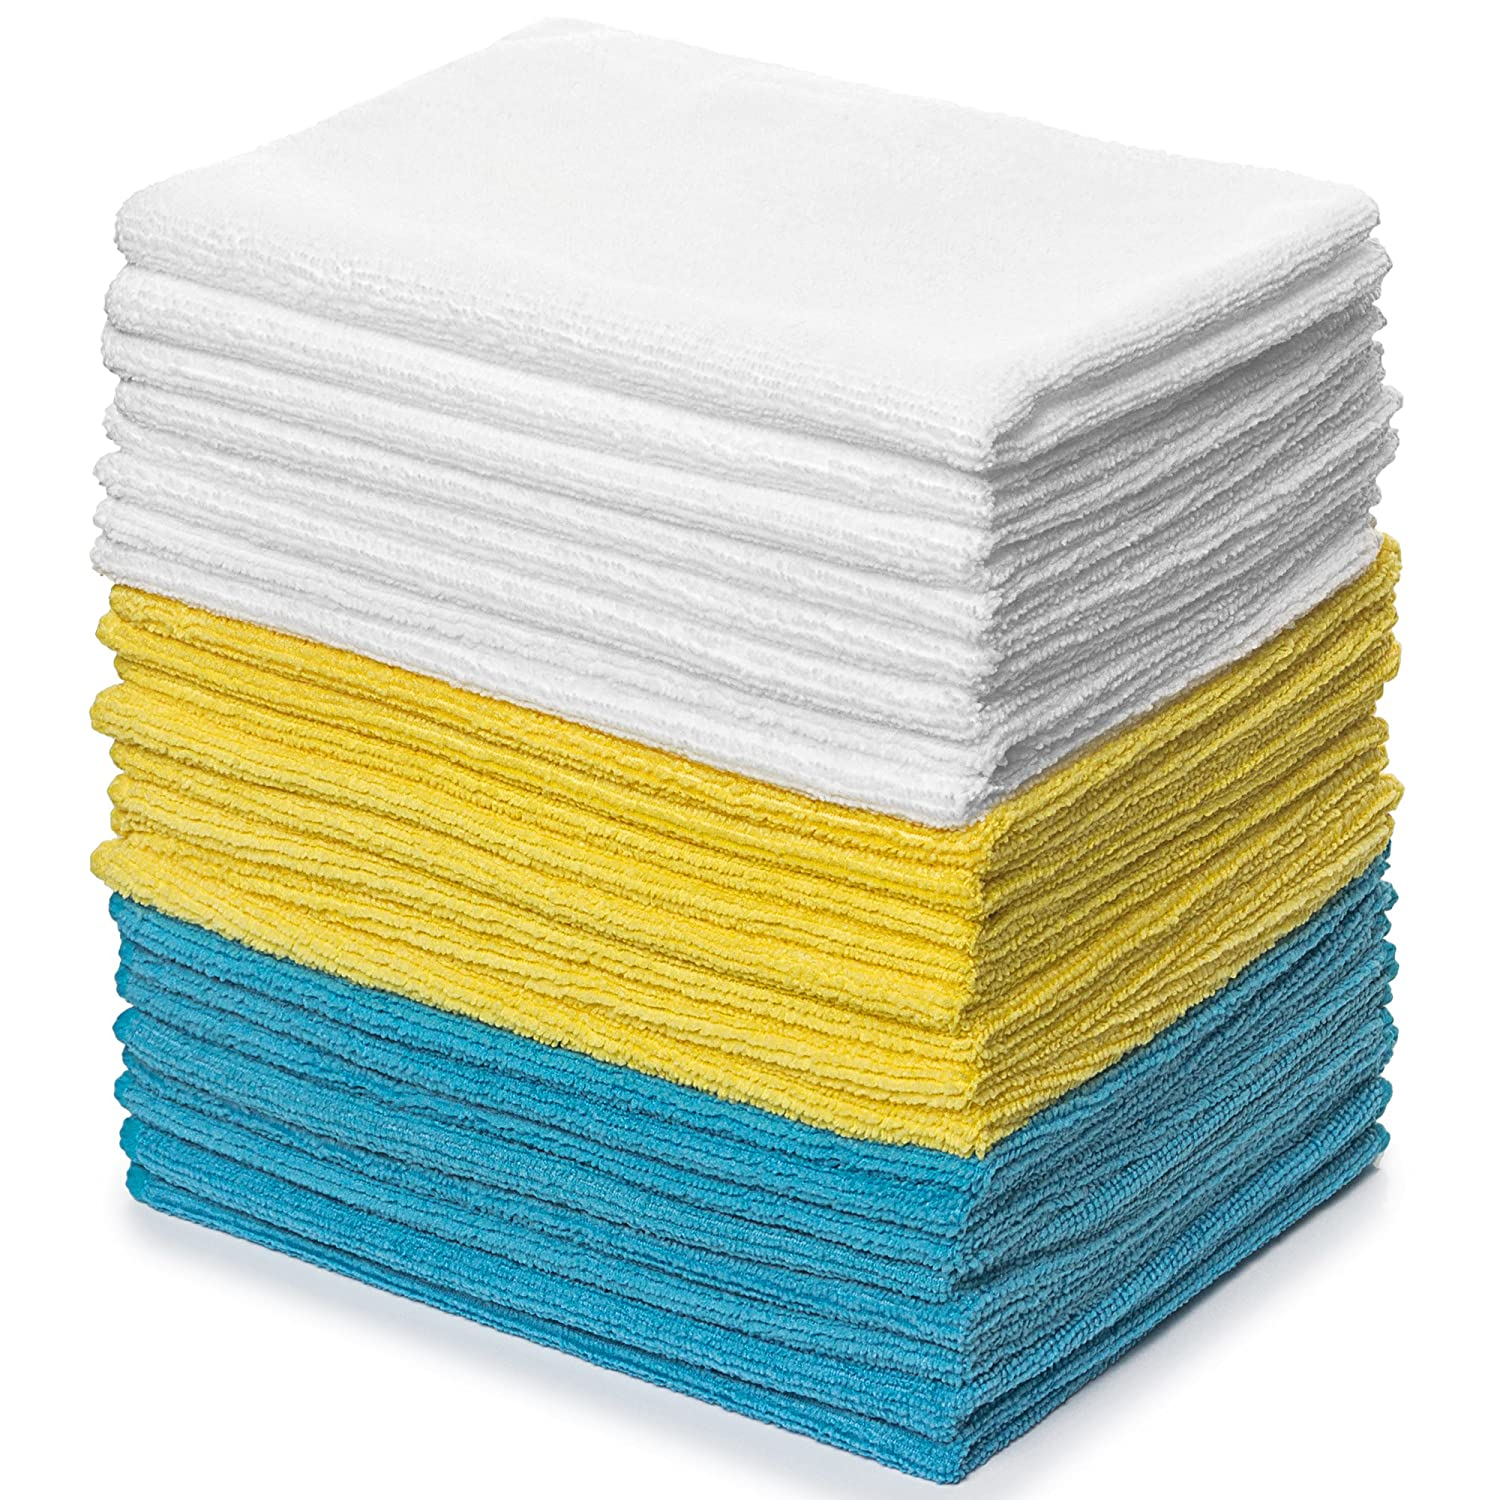 Royal Microfiber Cleaning Washcloths - 48 Pack Towels - 12 x 16 inches - Highly Absorbent, Ultra Soft and Reusable - Lint Free and Streak Free Equinox International 5854760